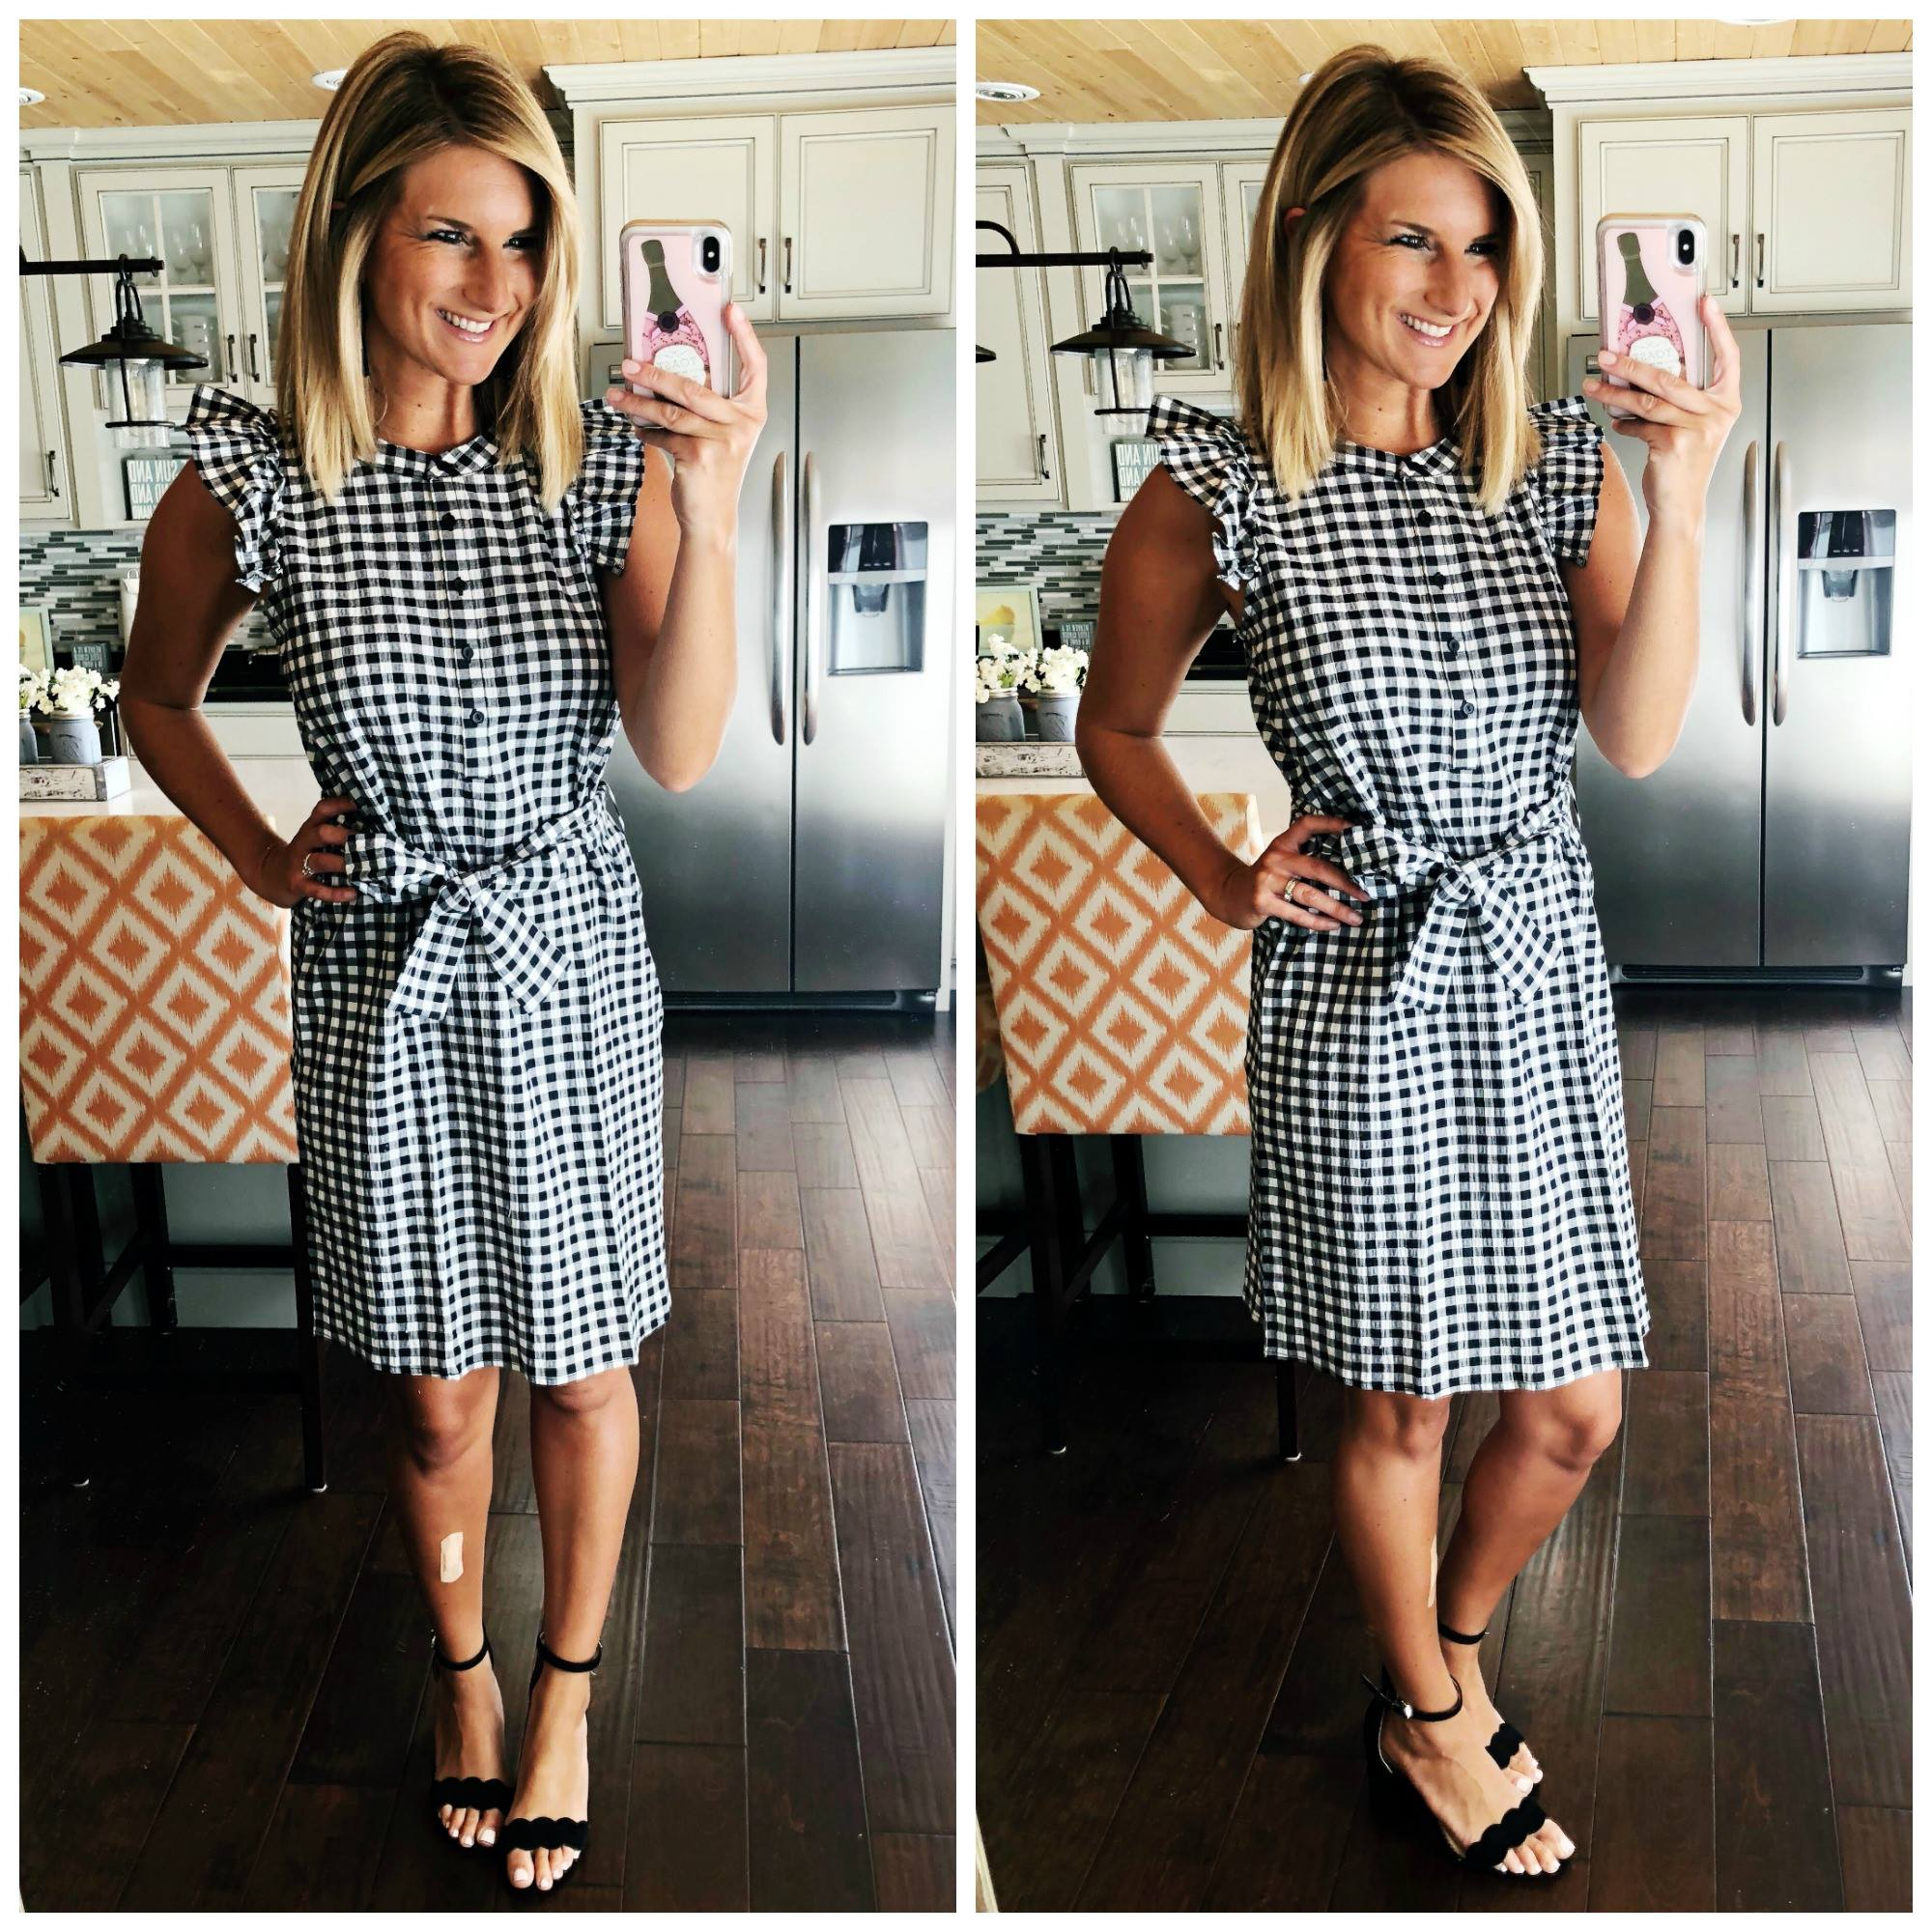 Summer Dress // How to Style a Gingham Dress